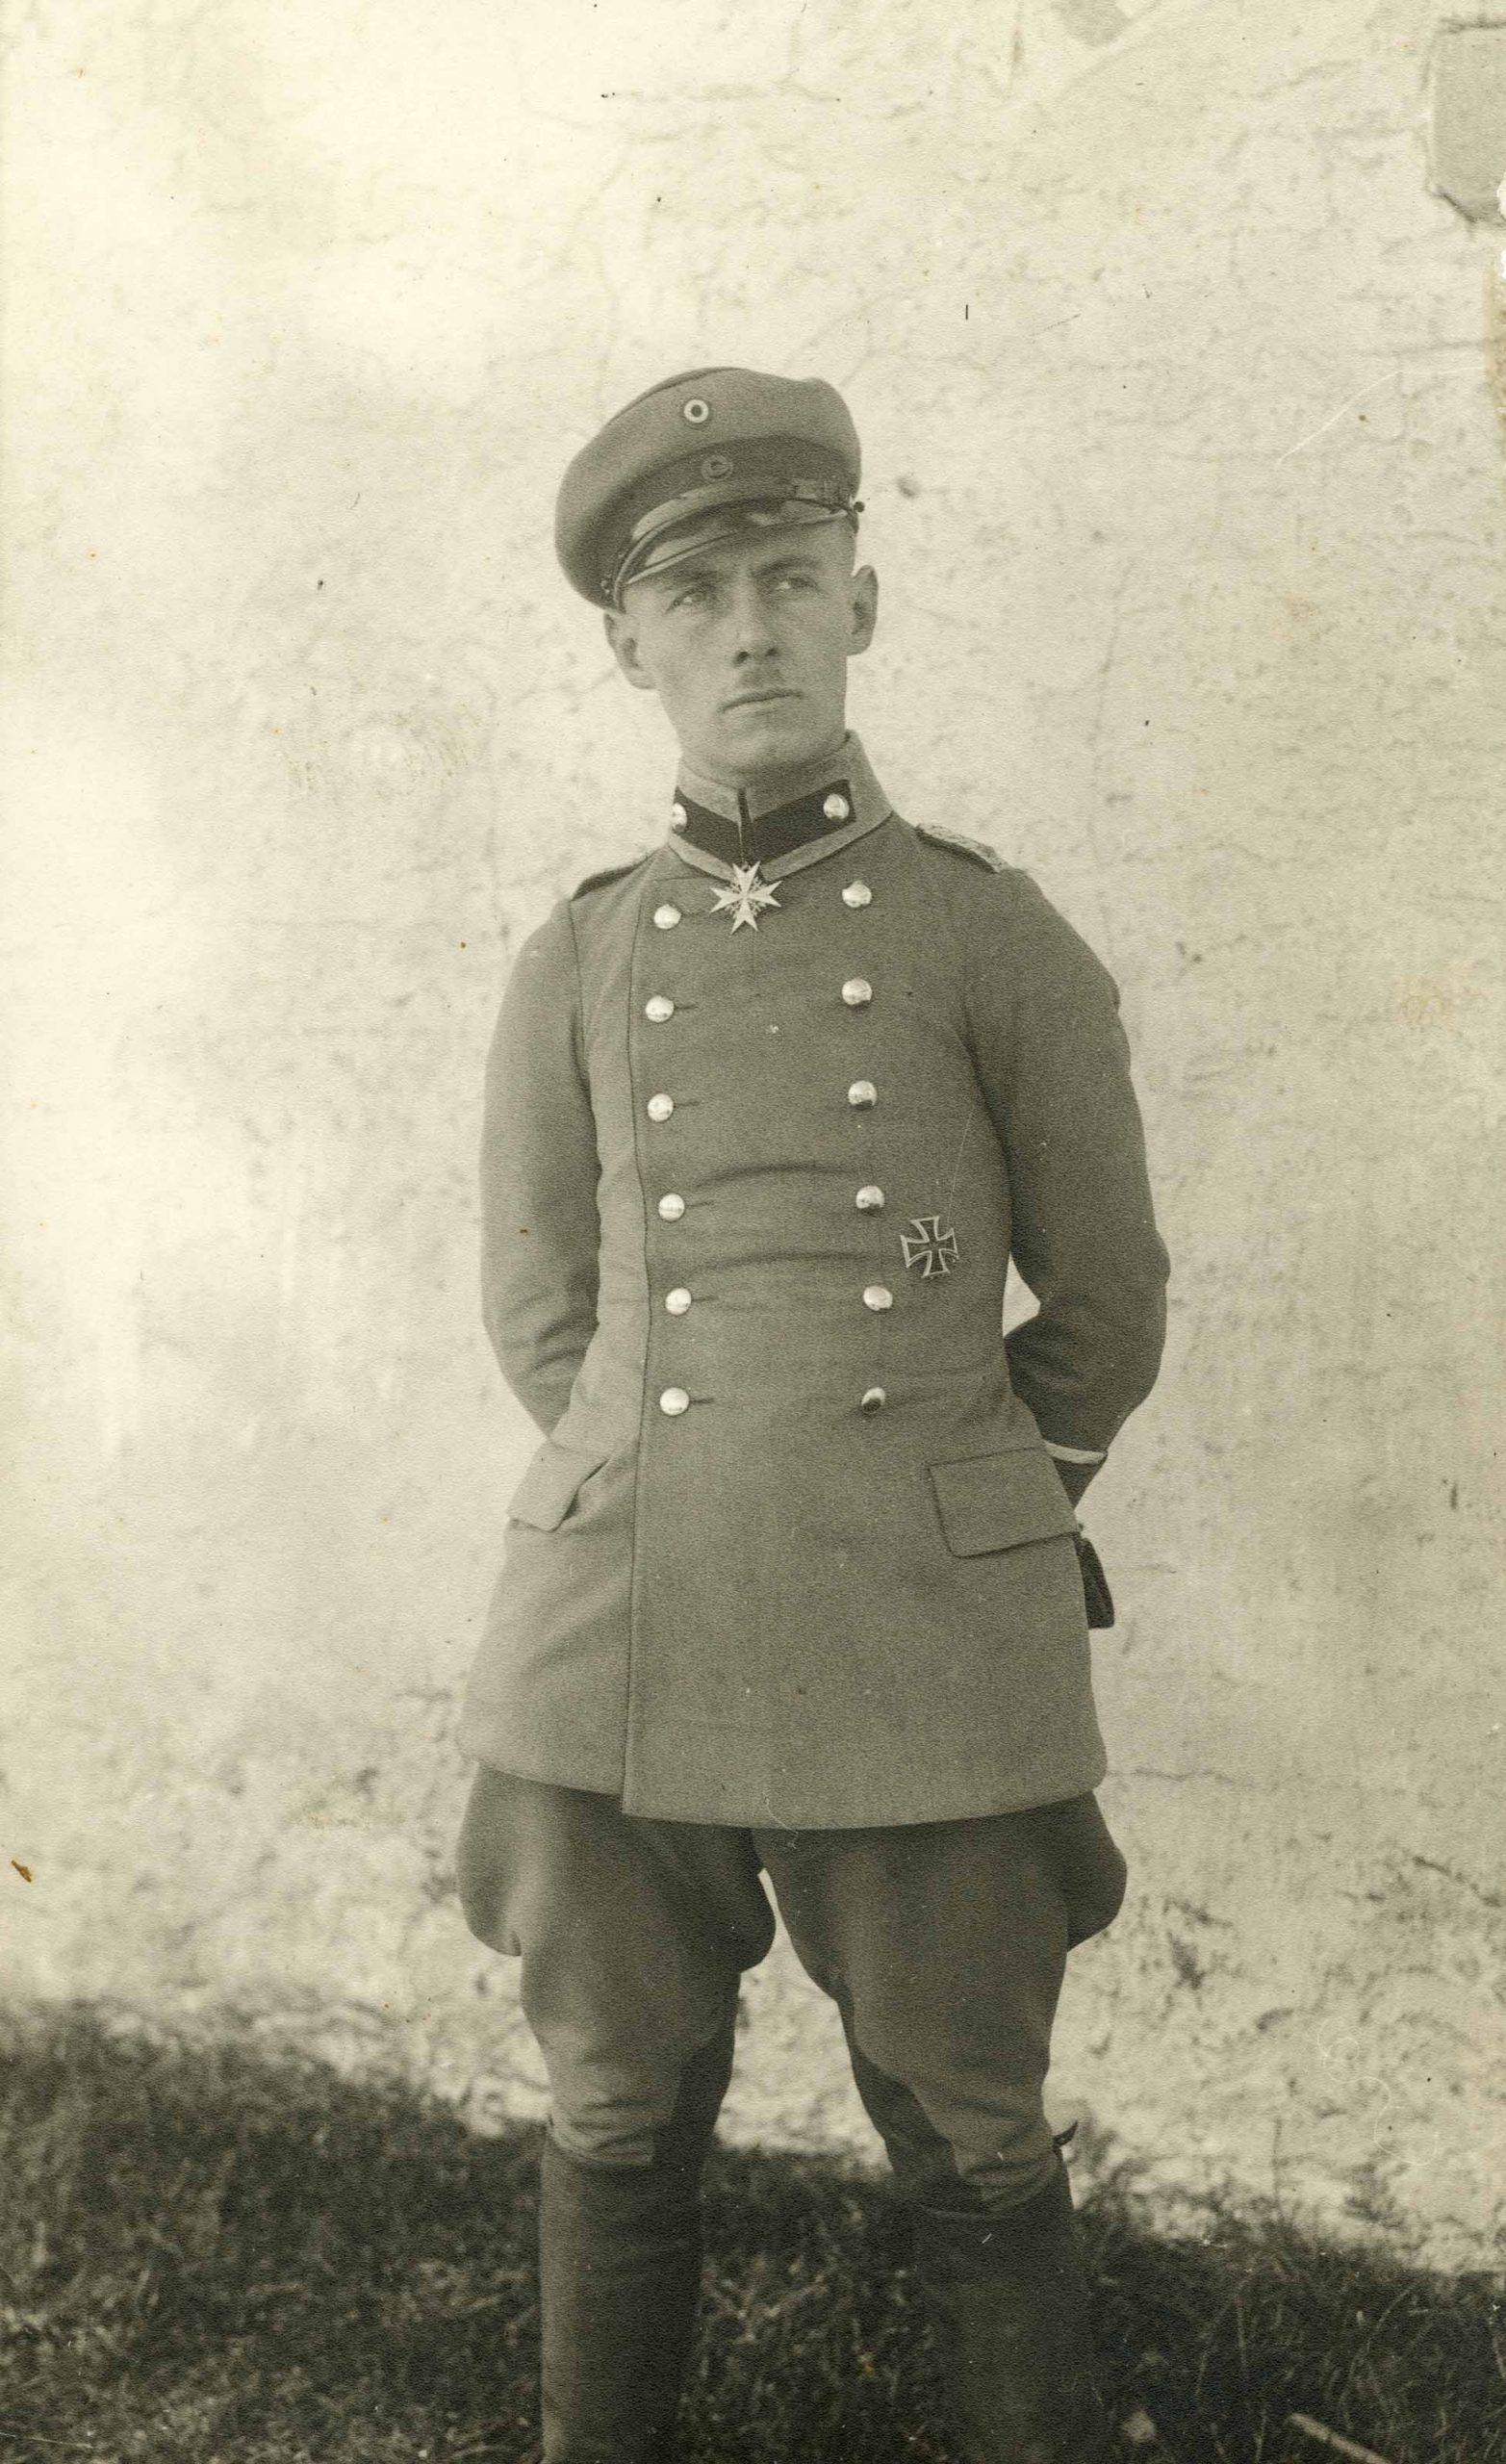 Young Rommel